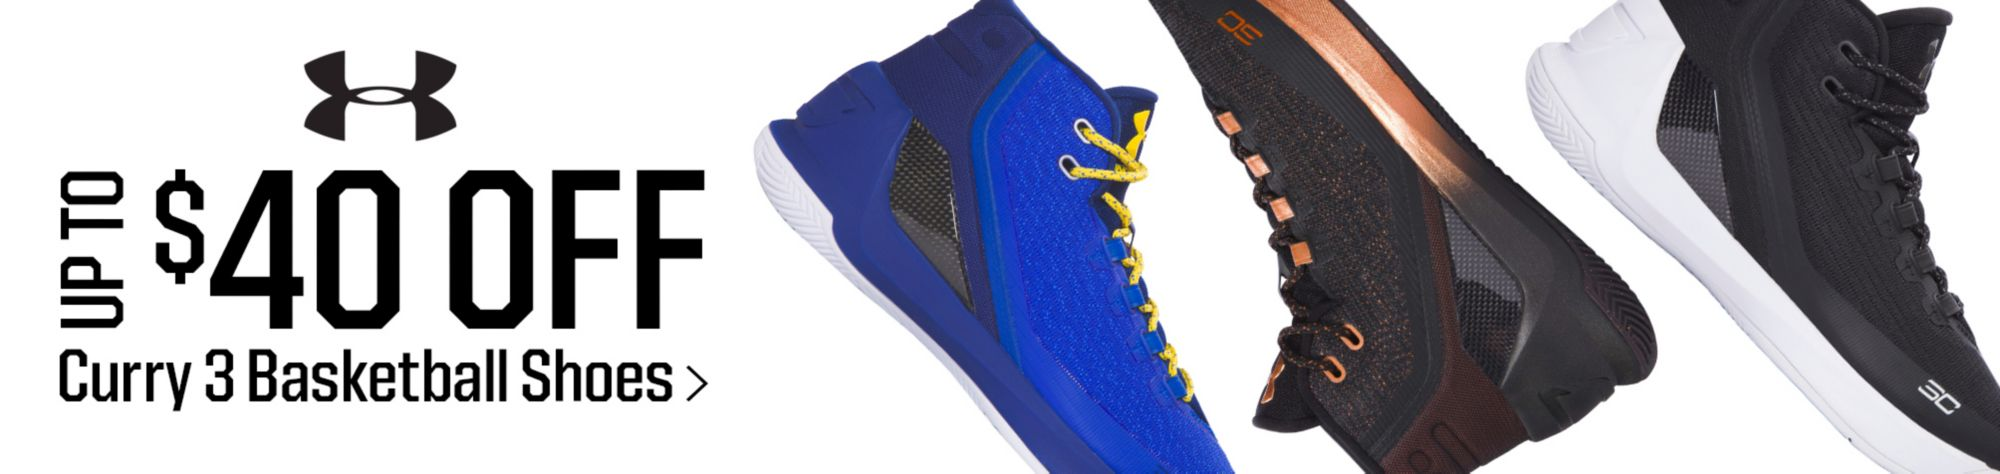 Shop Up To $40 Off Curry 3 Basketball Shoes